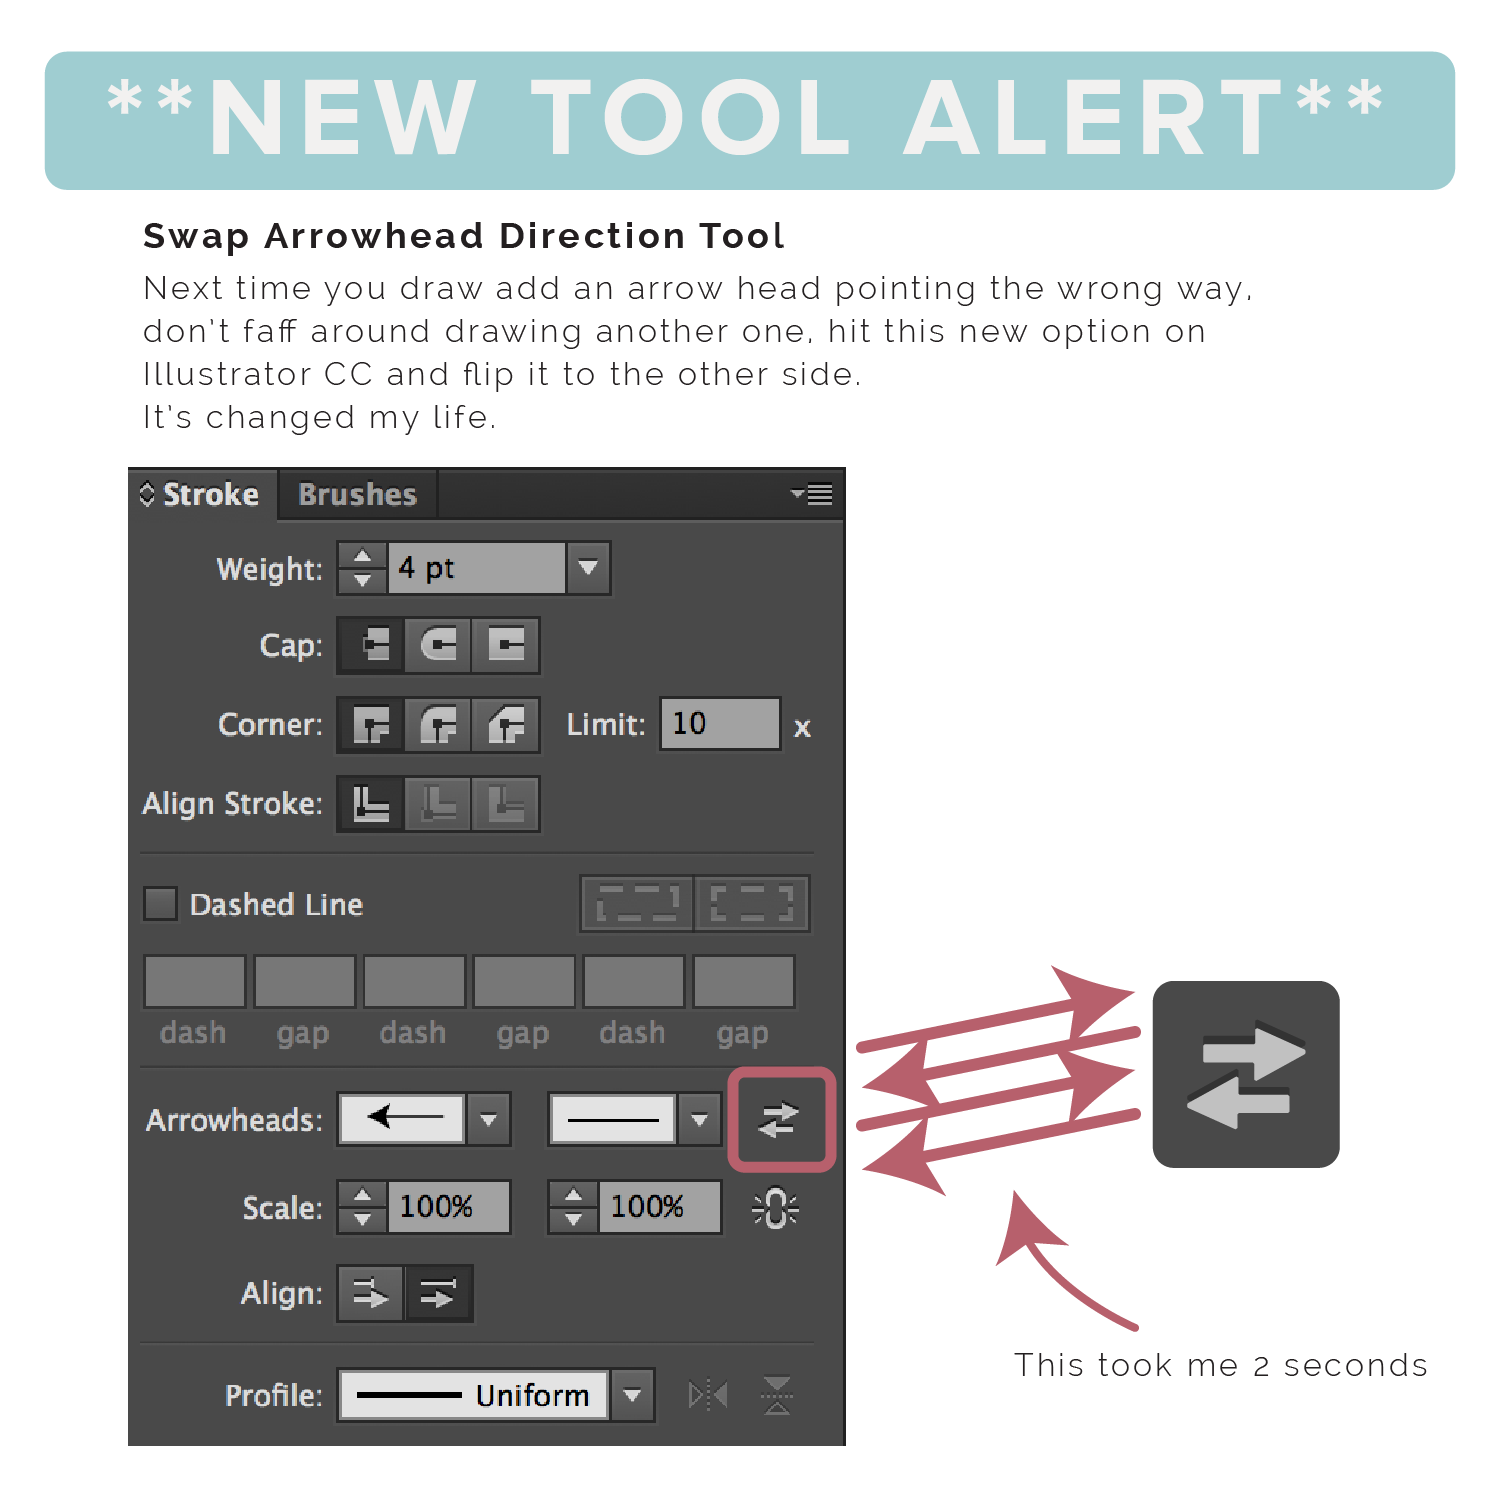 Swap Arrowhead Direction Tool